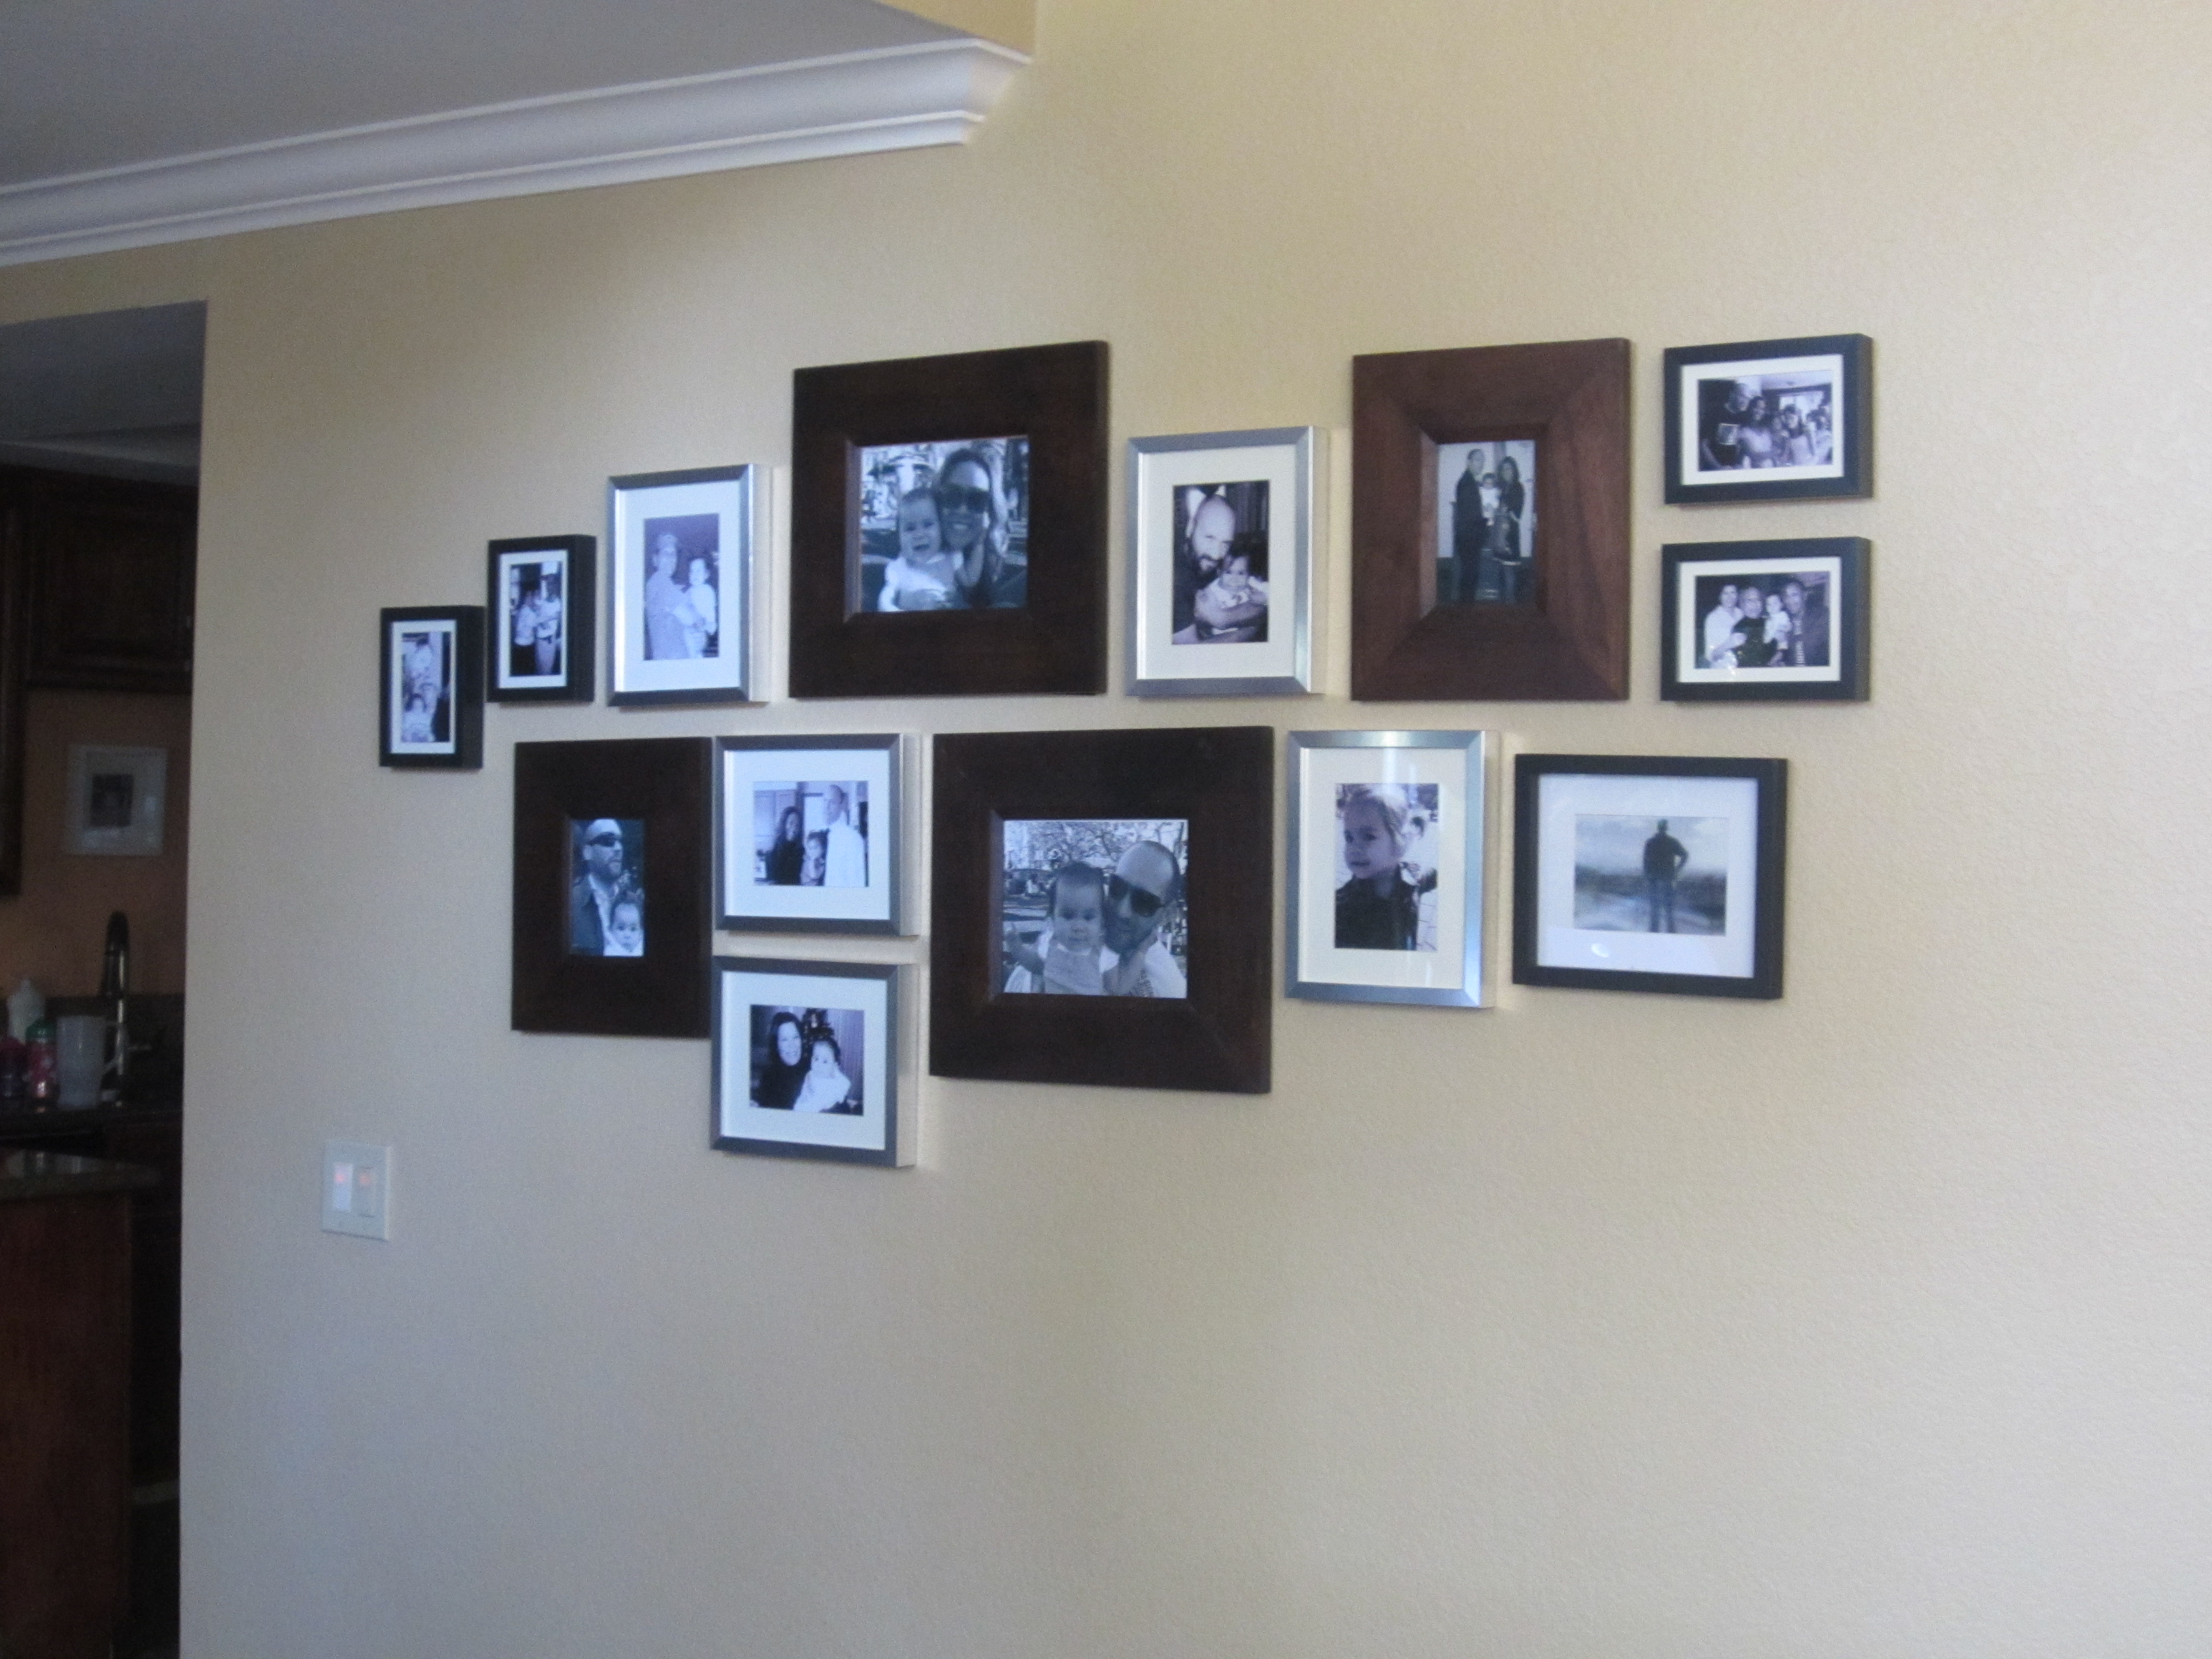 hanging pictures on the